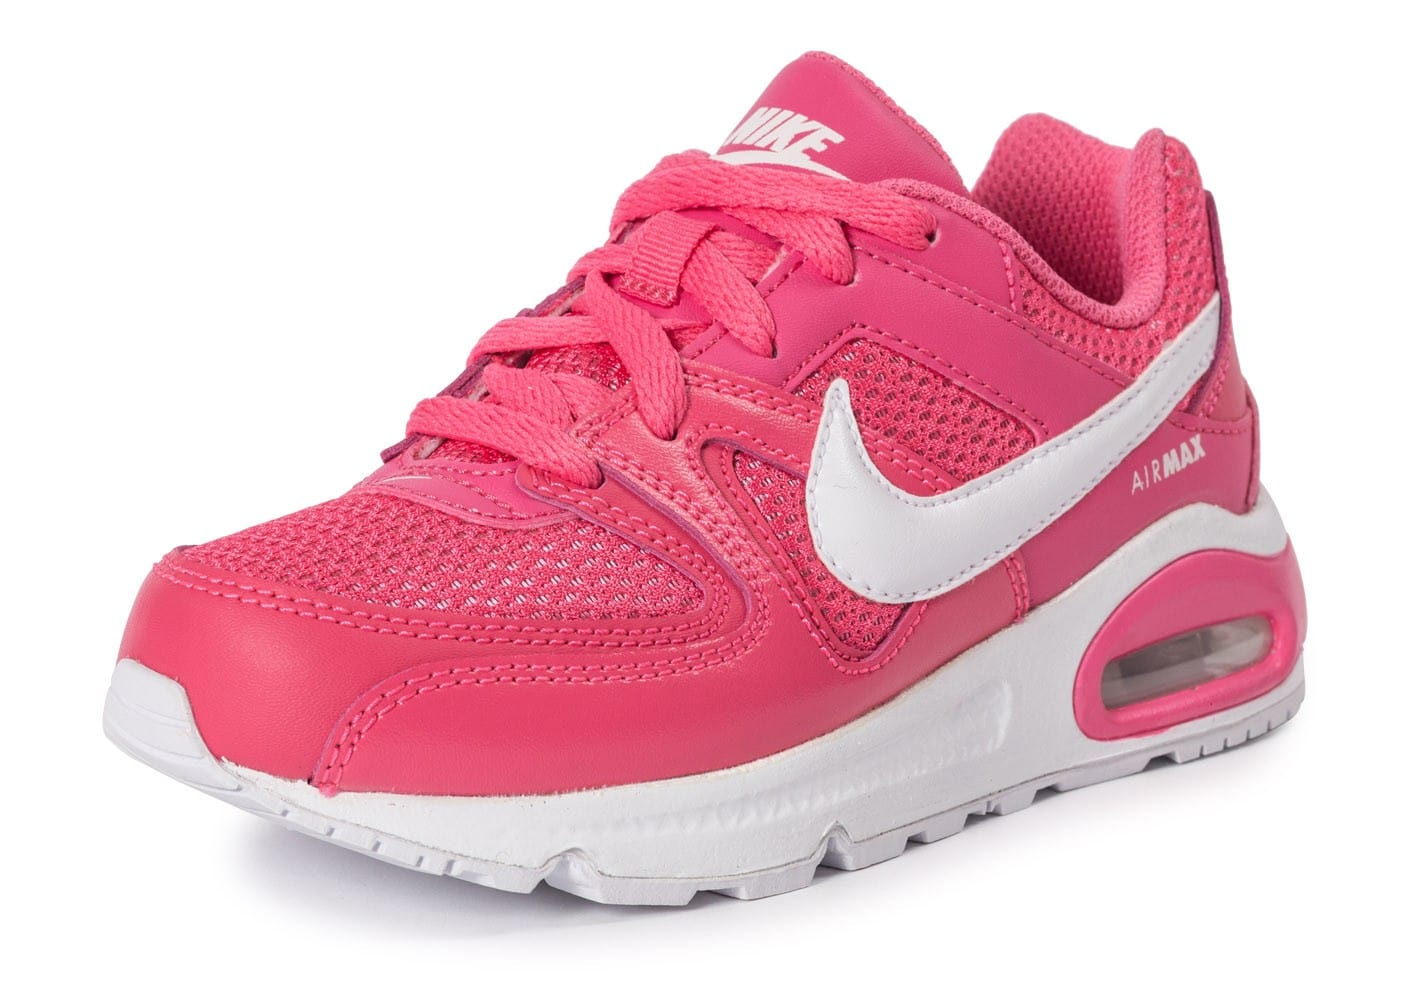 nike air max command enfant rose chaussures enfant chausport. Black Bedroom Furniture Sets. Home Design Ideas